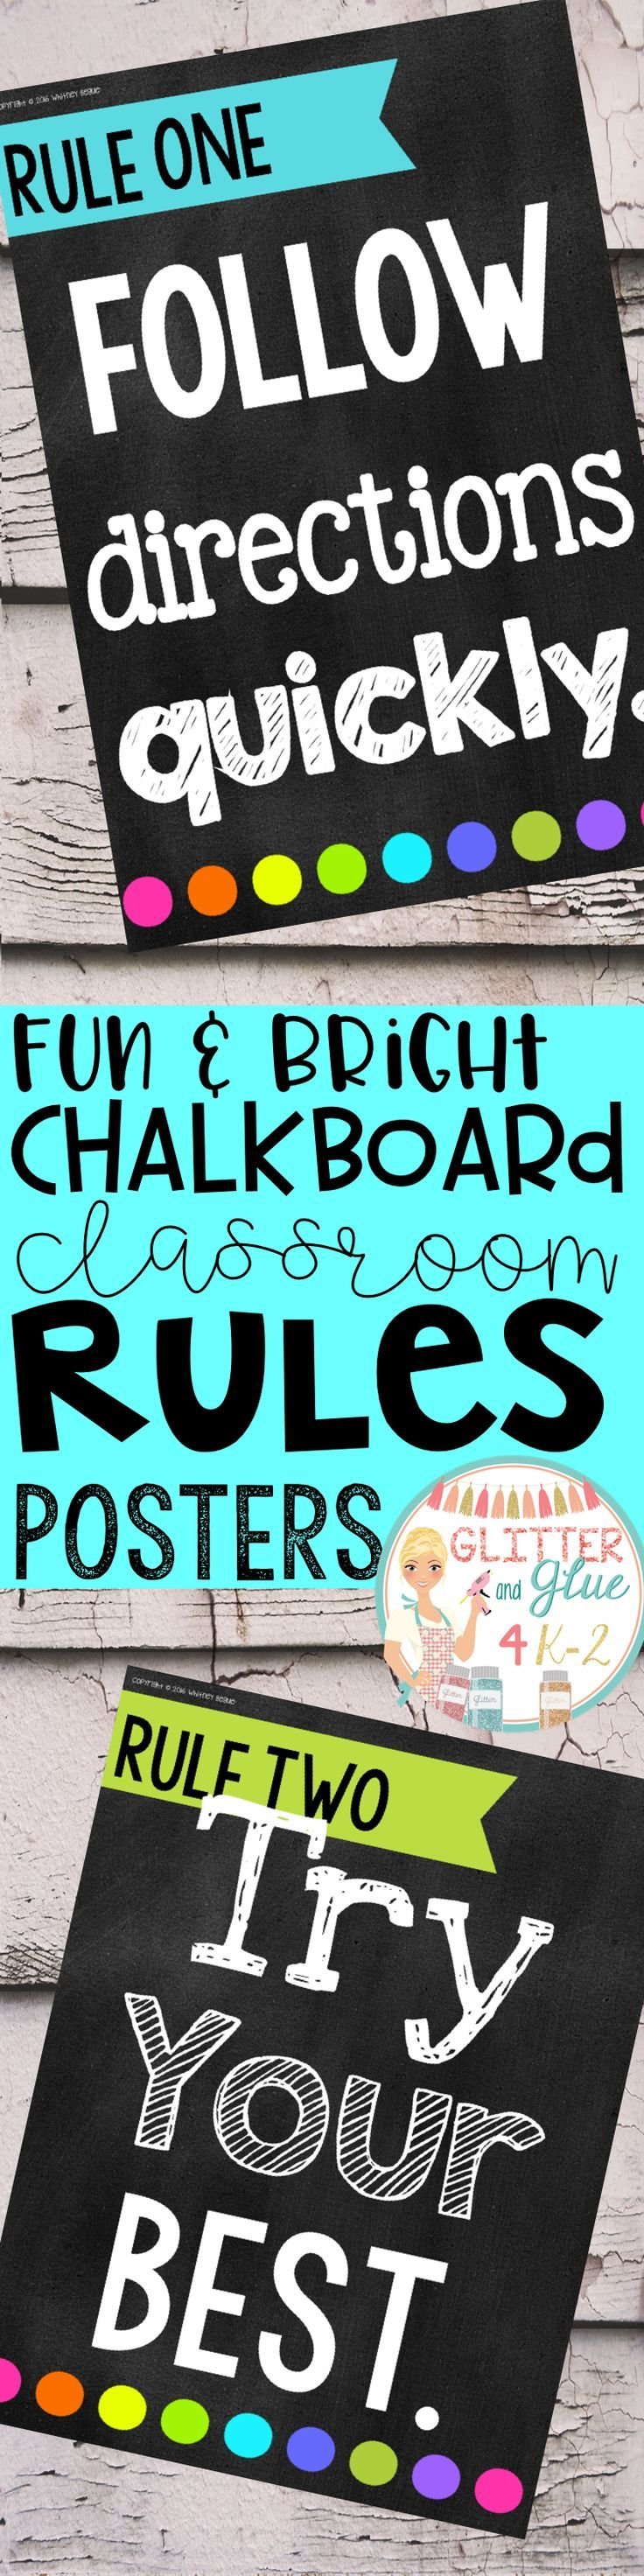 Poster design keywords - Twelve Chalkboard With Pops Of Color Posters For Classroom Rules